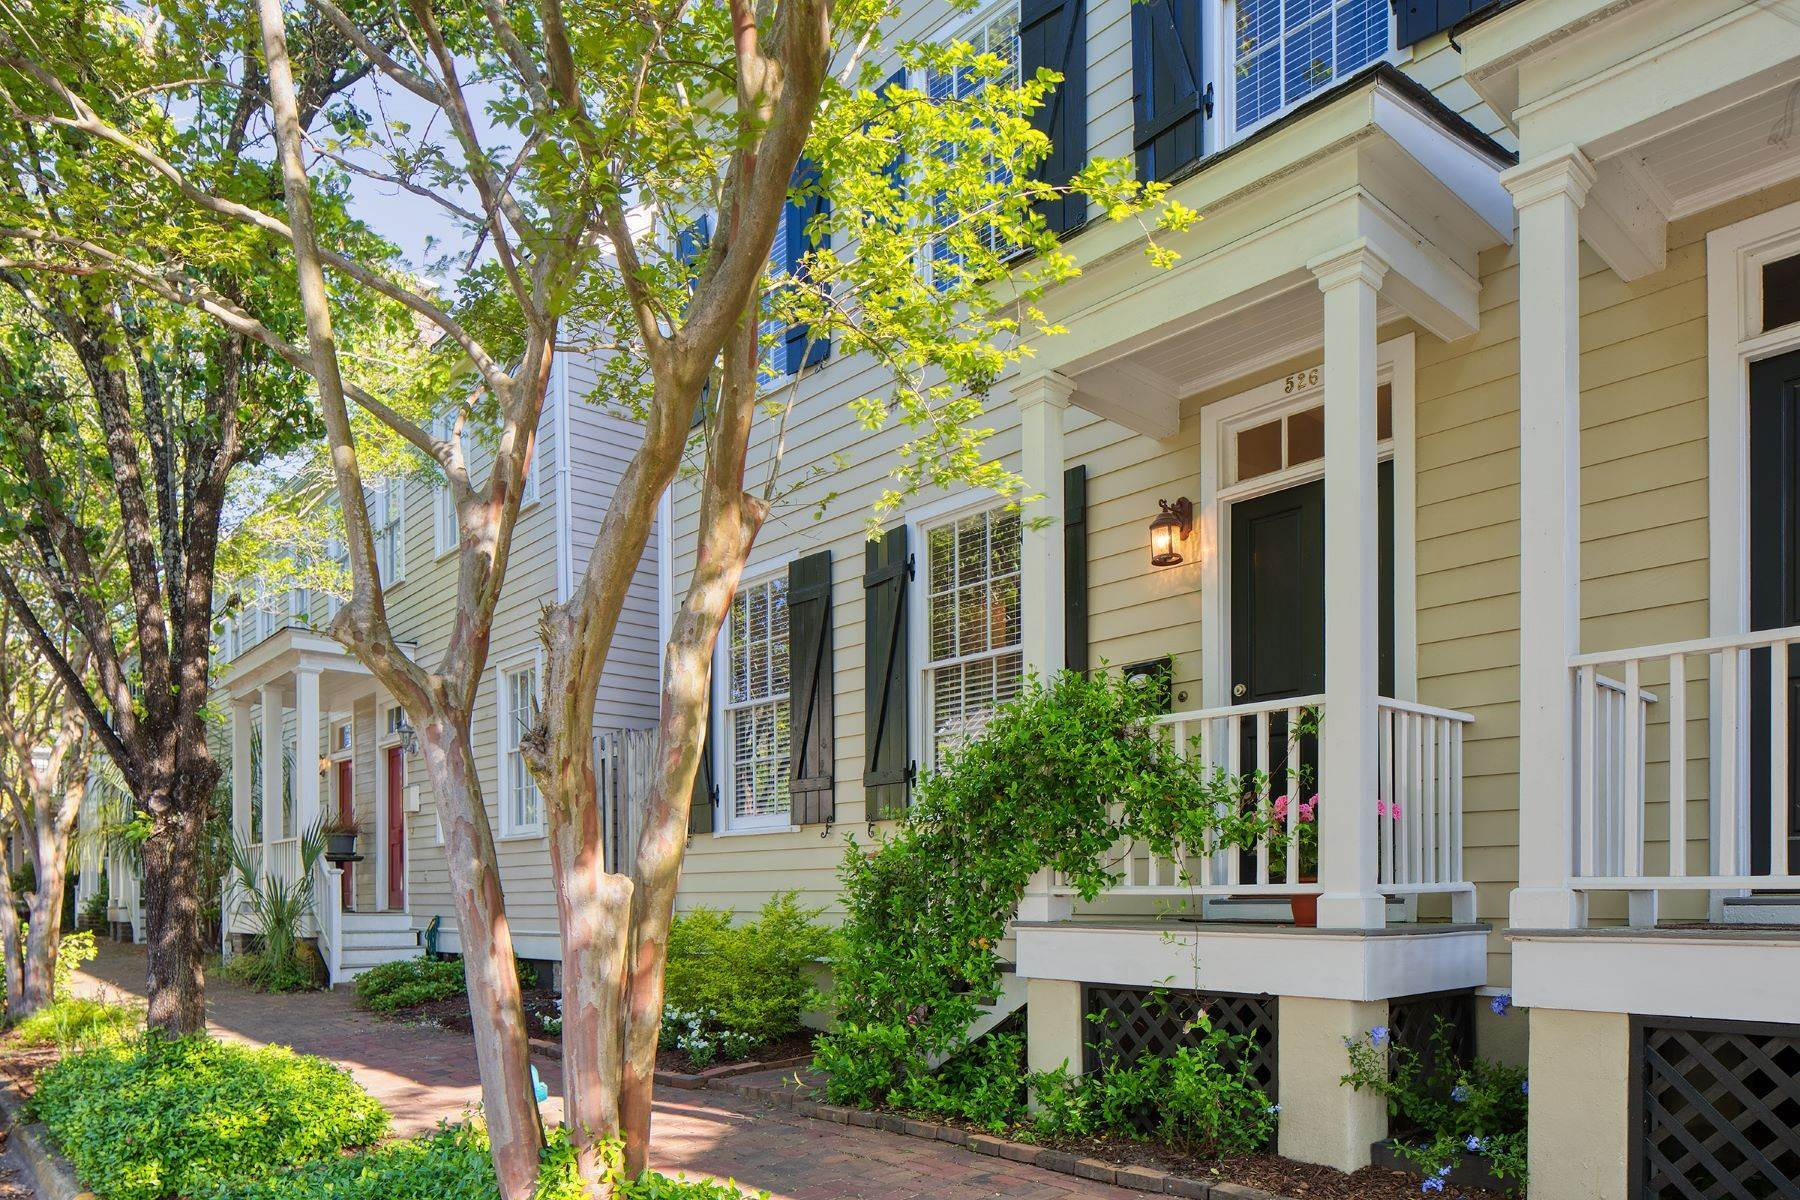 2. townhouses por un Venta en Charming Townhouse Built In 2000 In The Historic Style 526 E Taylor Street Savannah, Georgia 31401 Estados Unidos